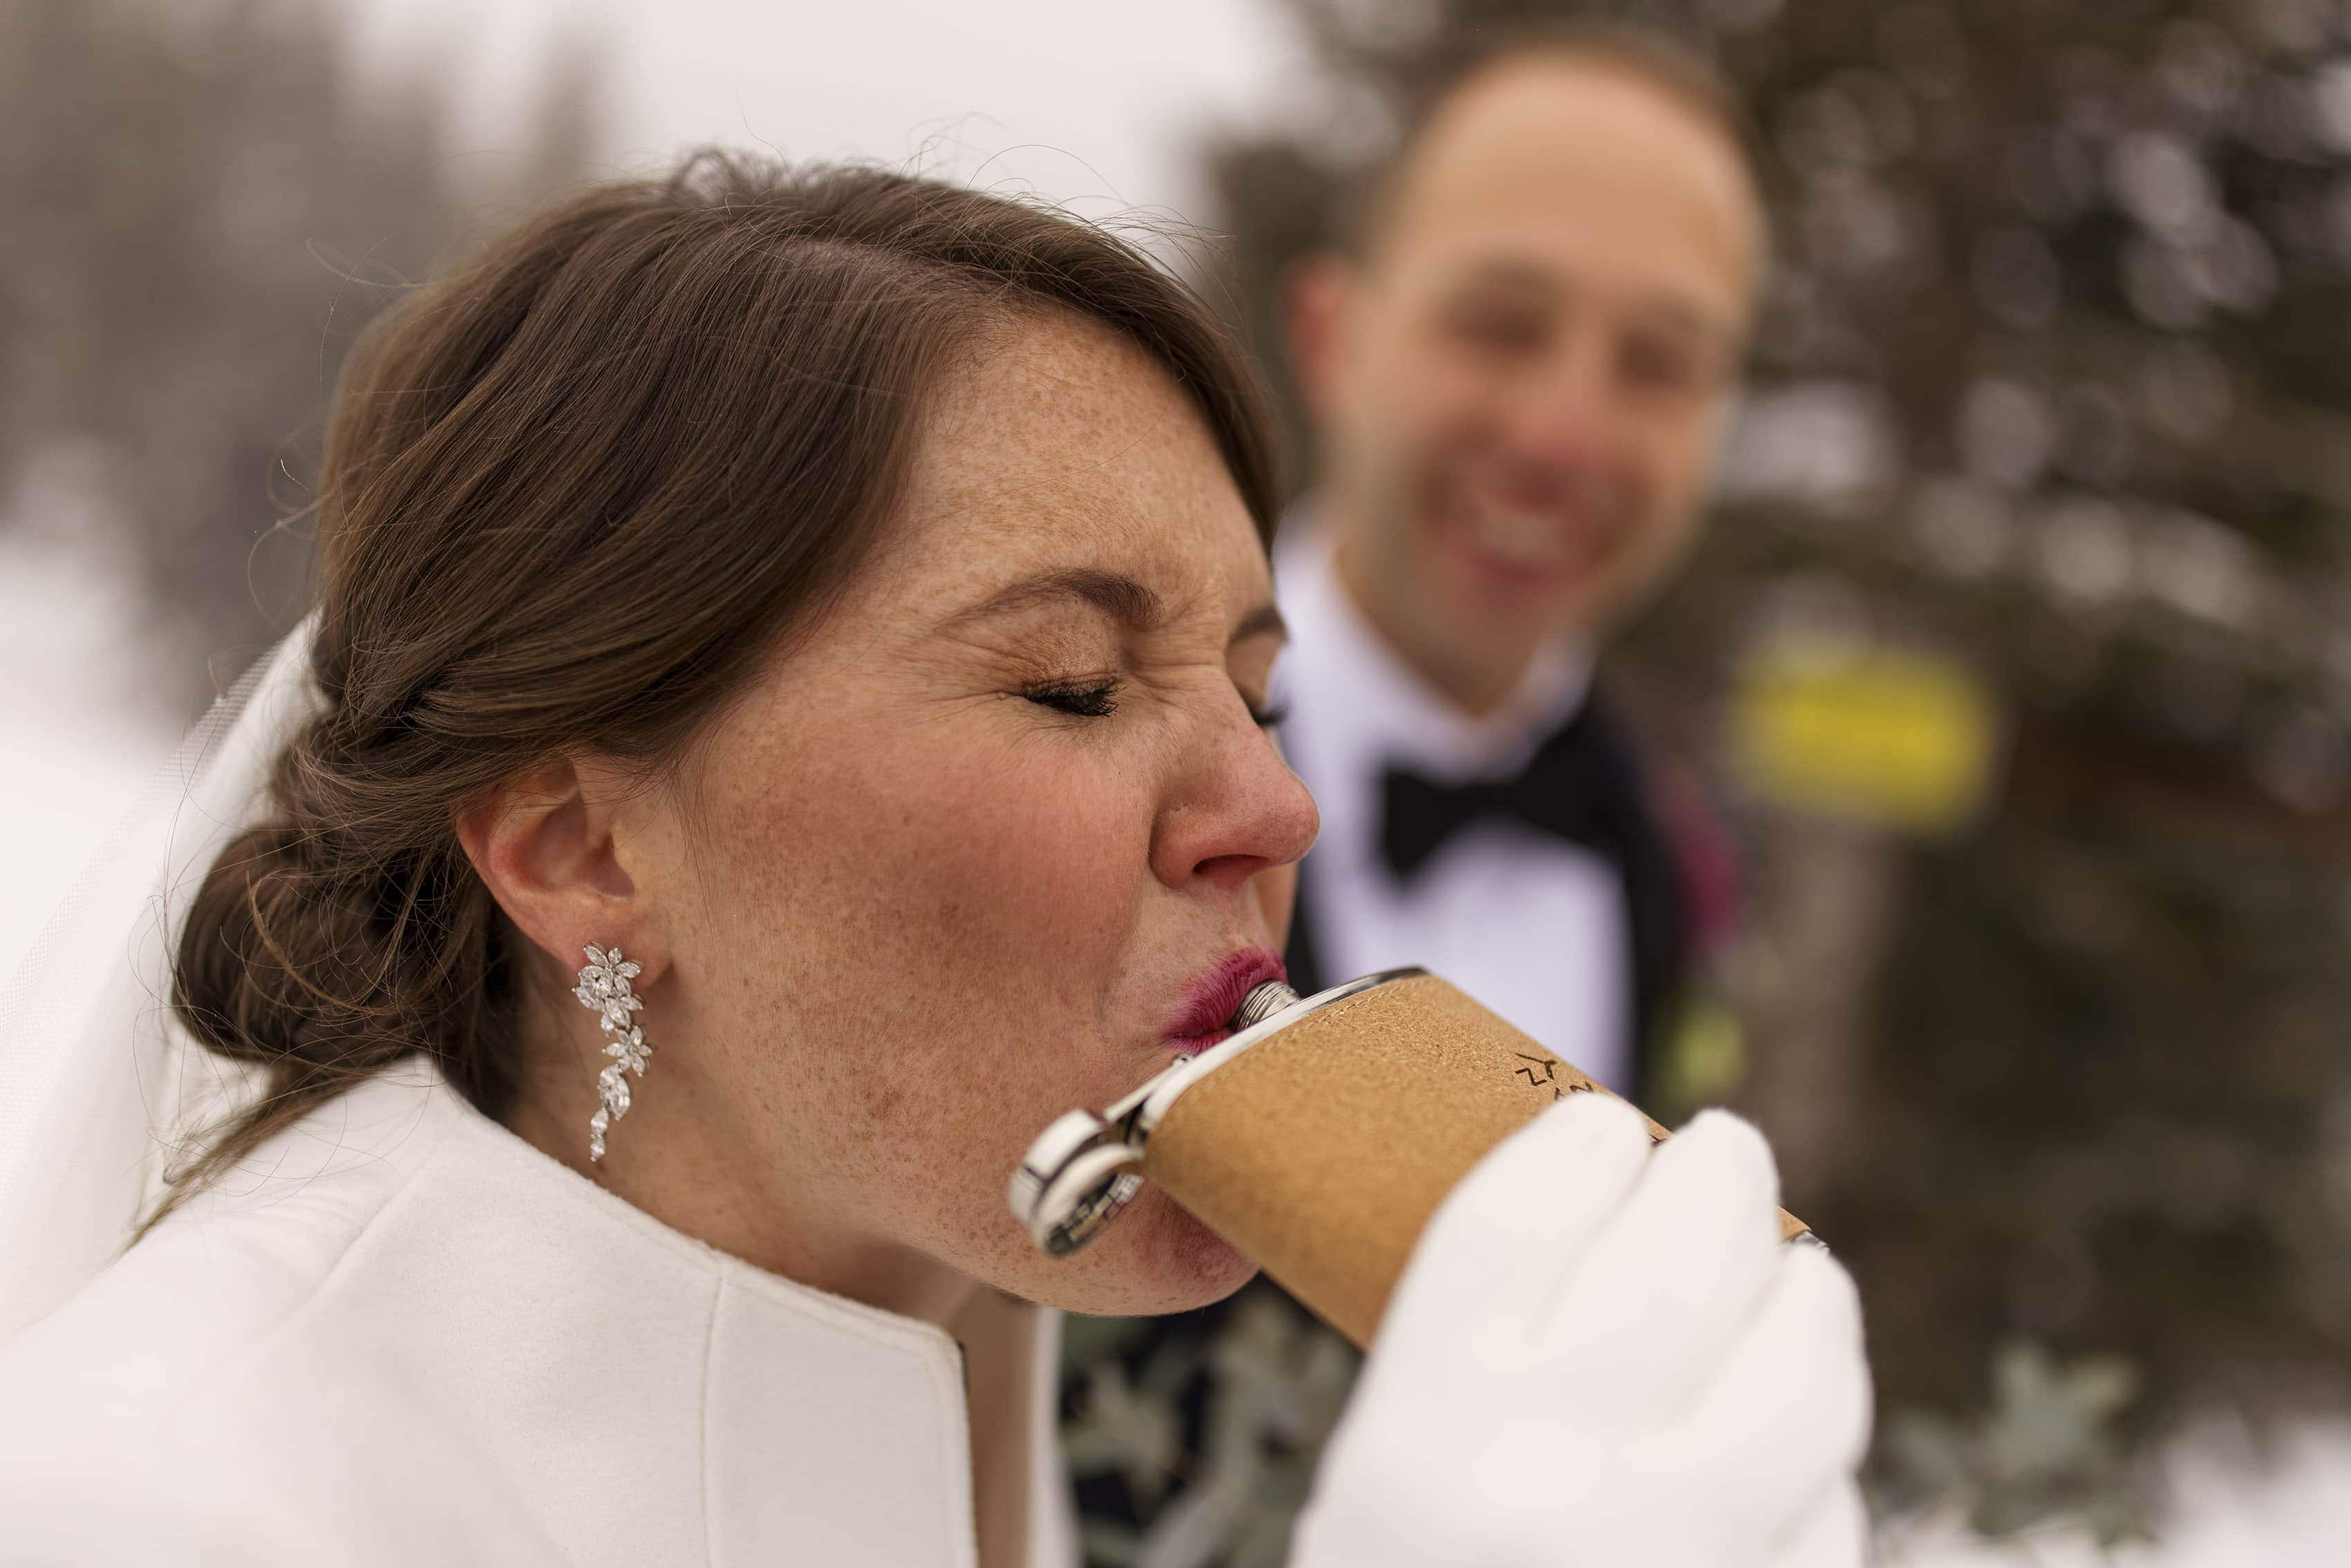 The bride takes a pull off a flask